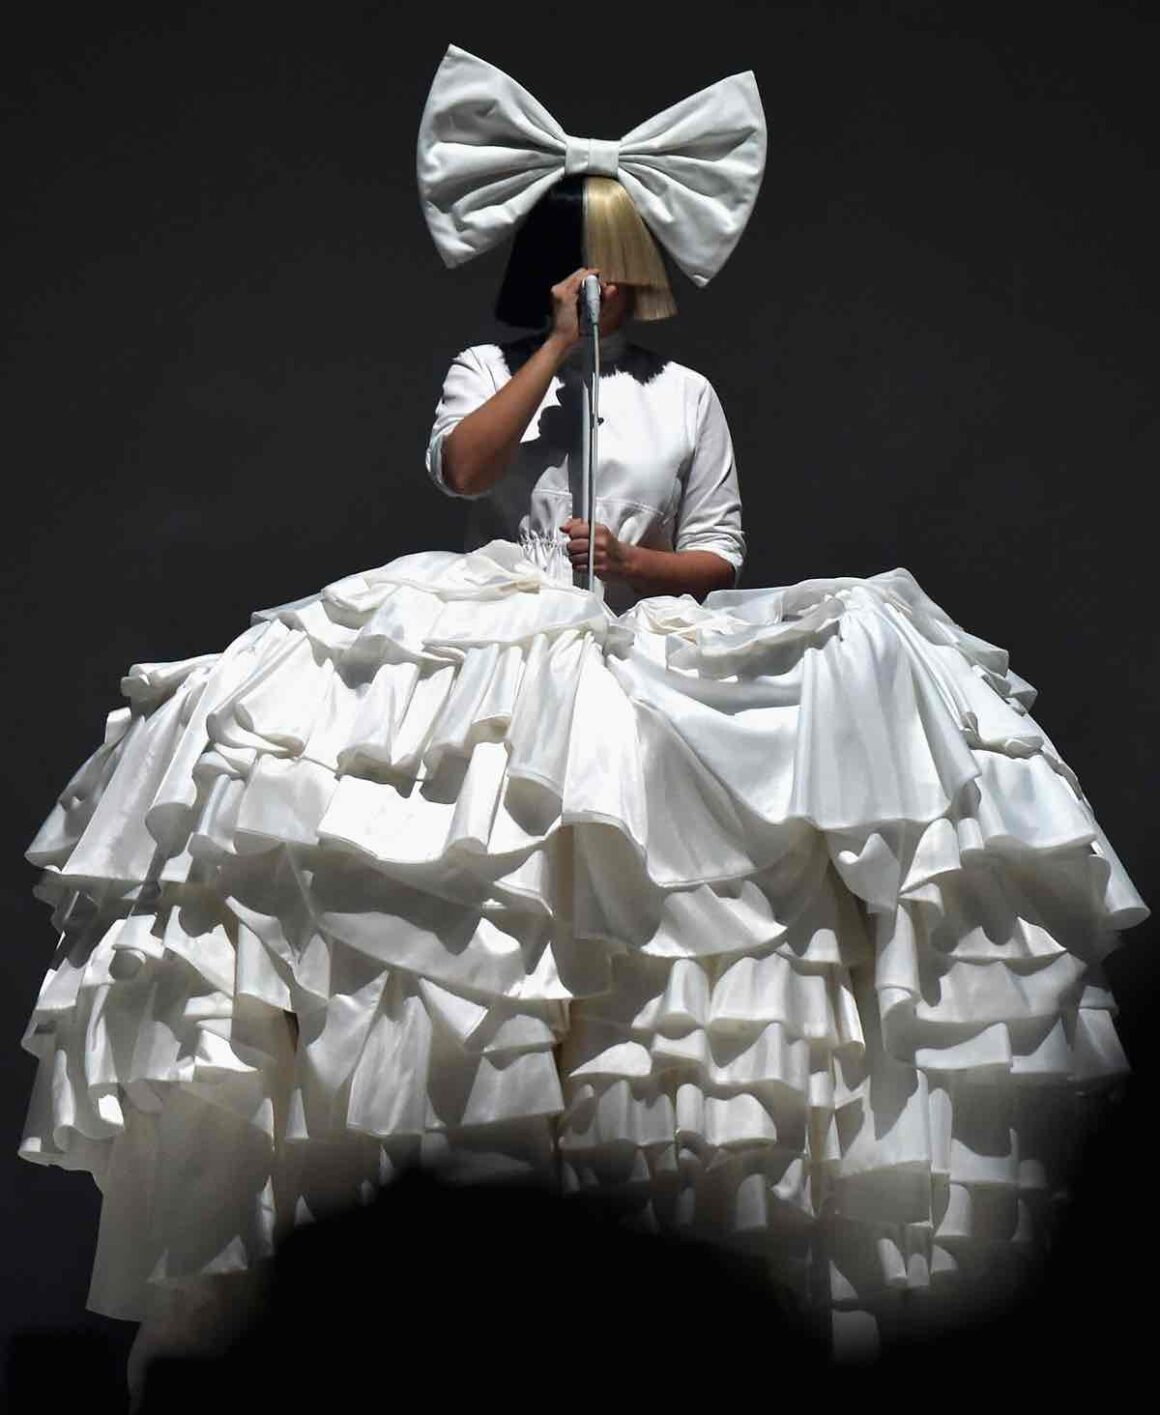 Sia In Concert - Brooklyn, NY